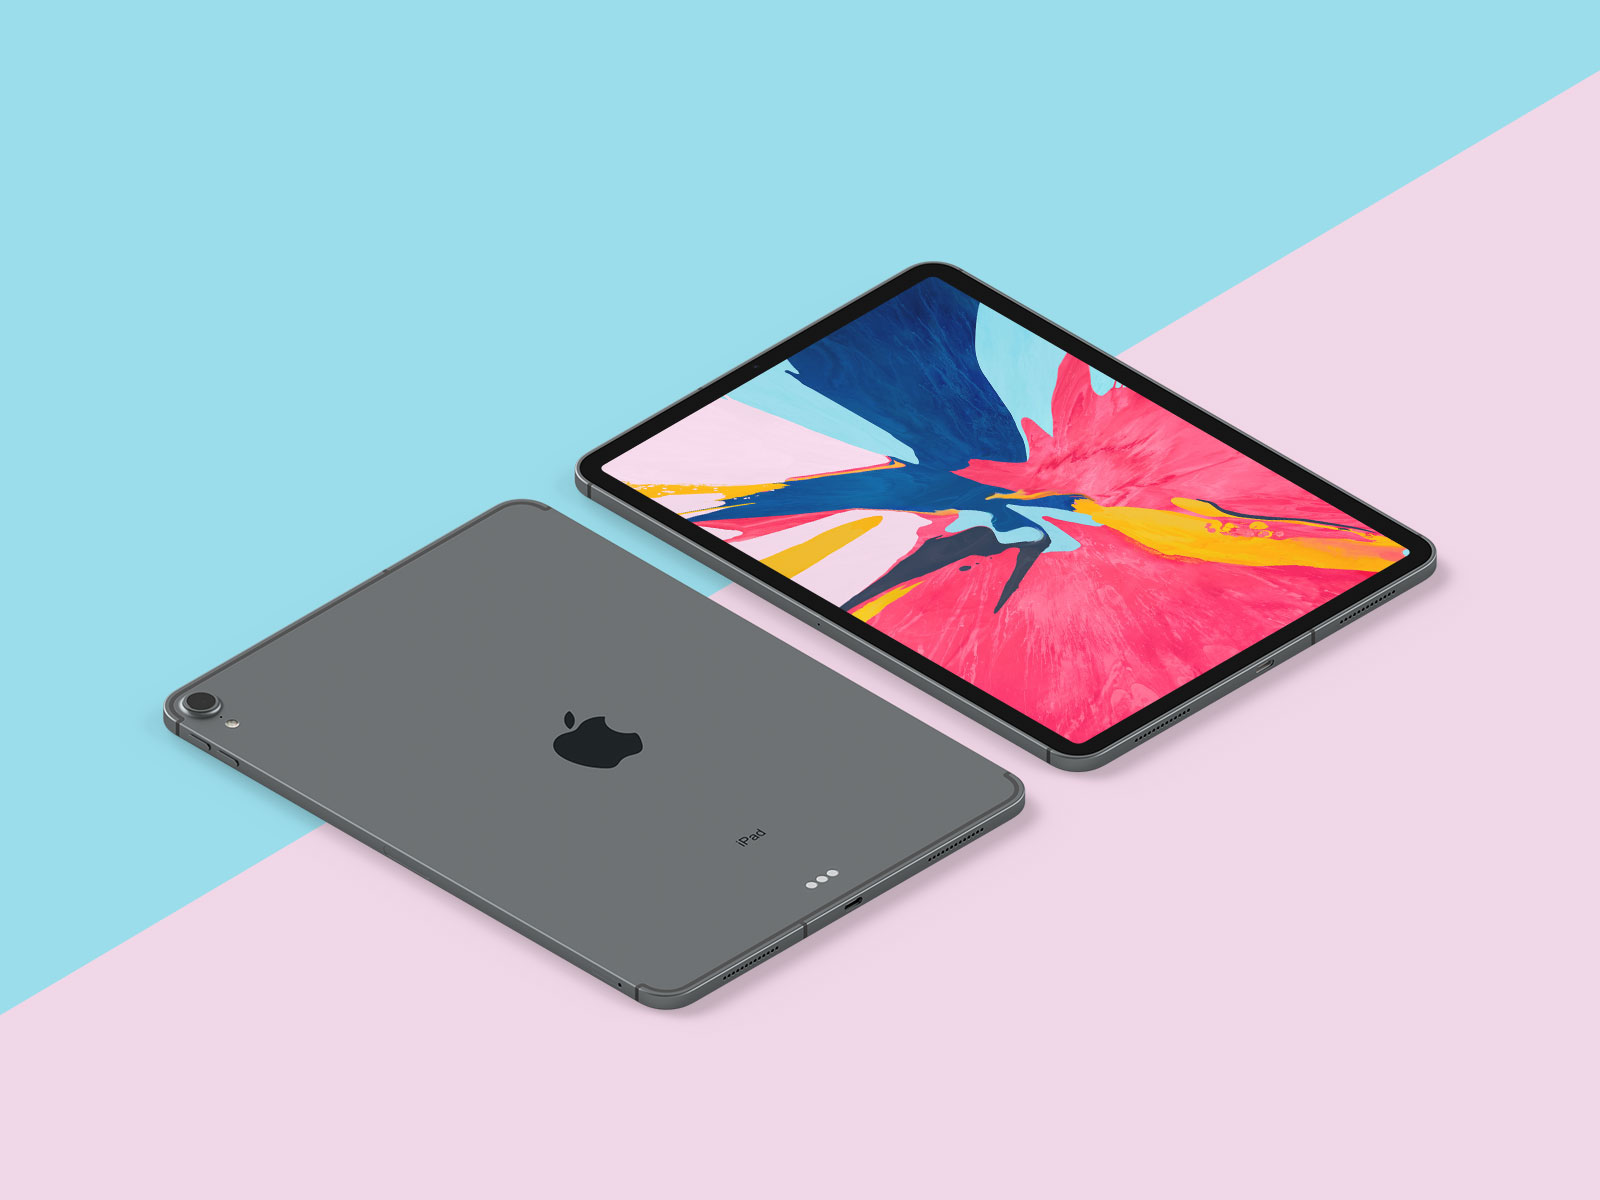 Free-New-iPad-Pro-2018-Mockup-PSD-in-Perspective-Vew-2